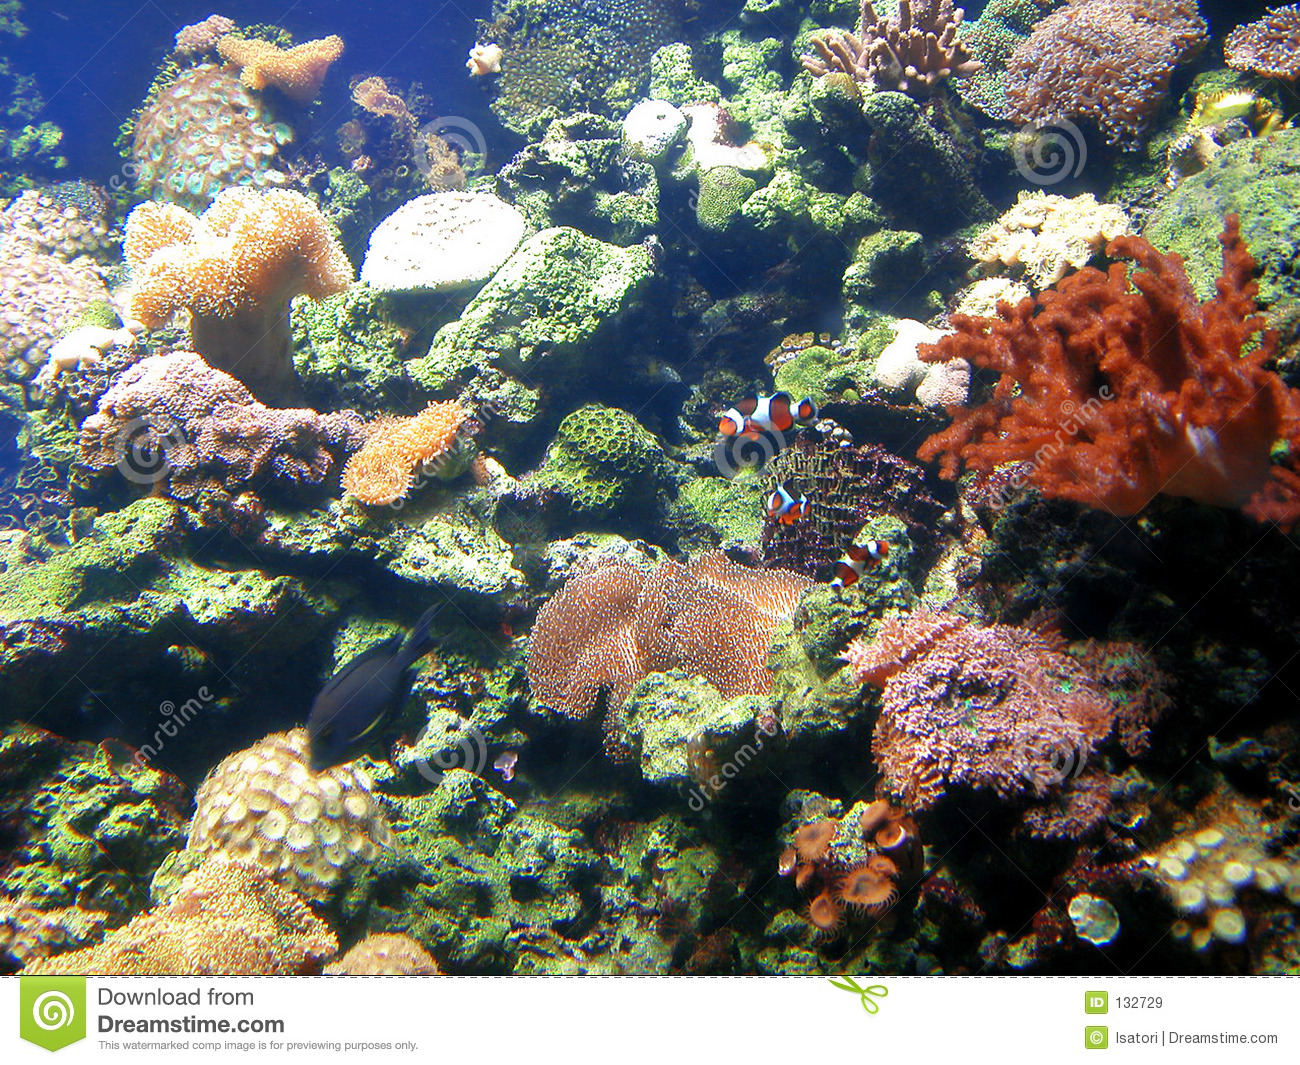 Fish tank with coral and sponges stock image image of for Fish stock tank